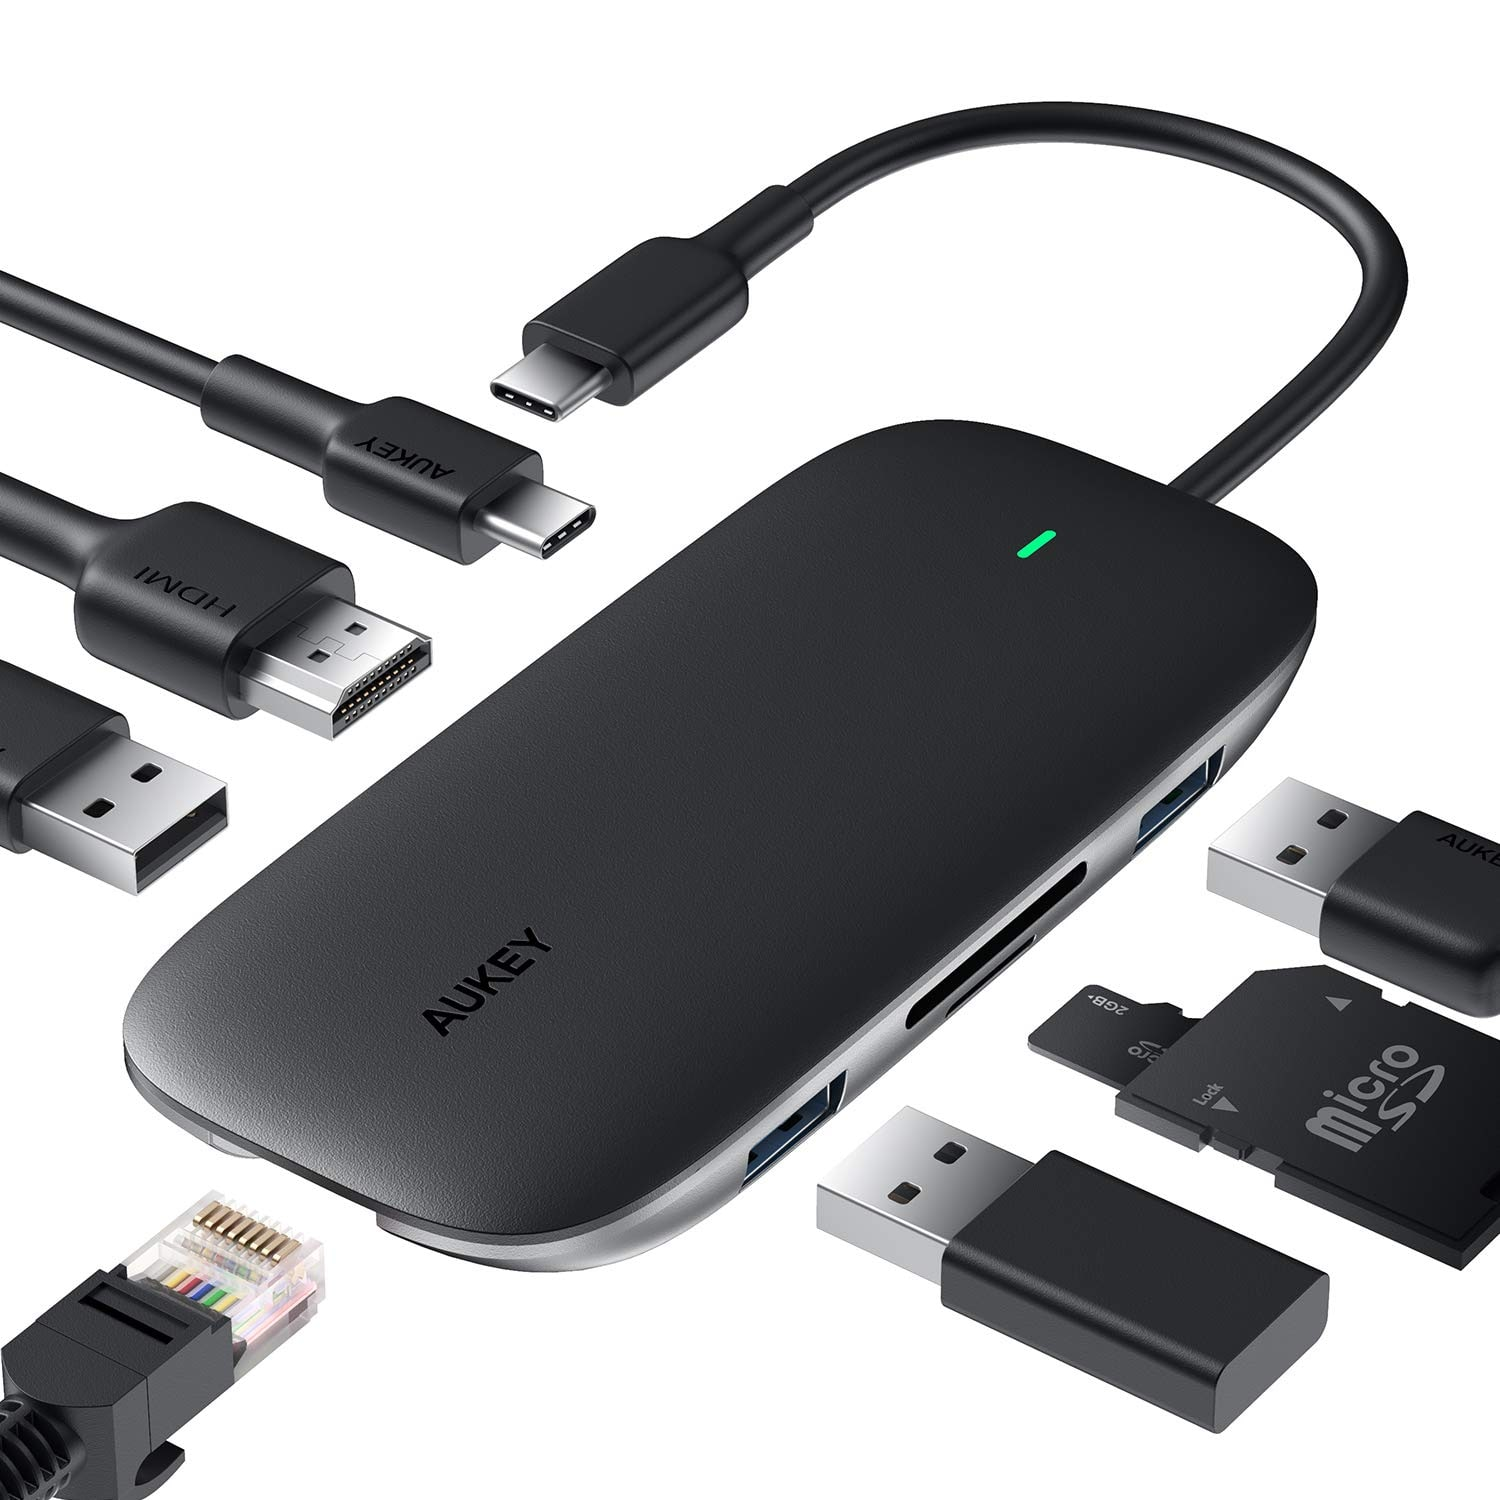 Aukey 8-in-1 USB-C hub with ethernet, hdmi and 100W Power delivery $29.06